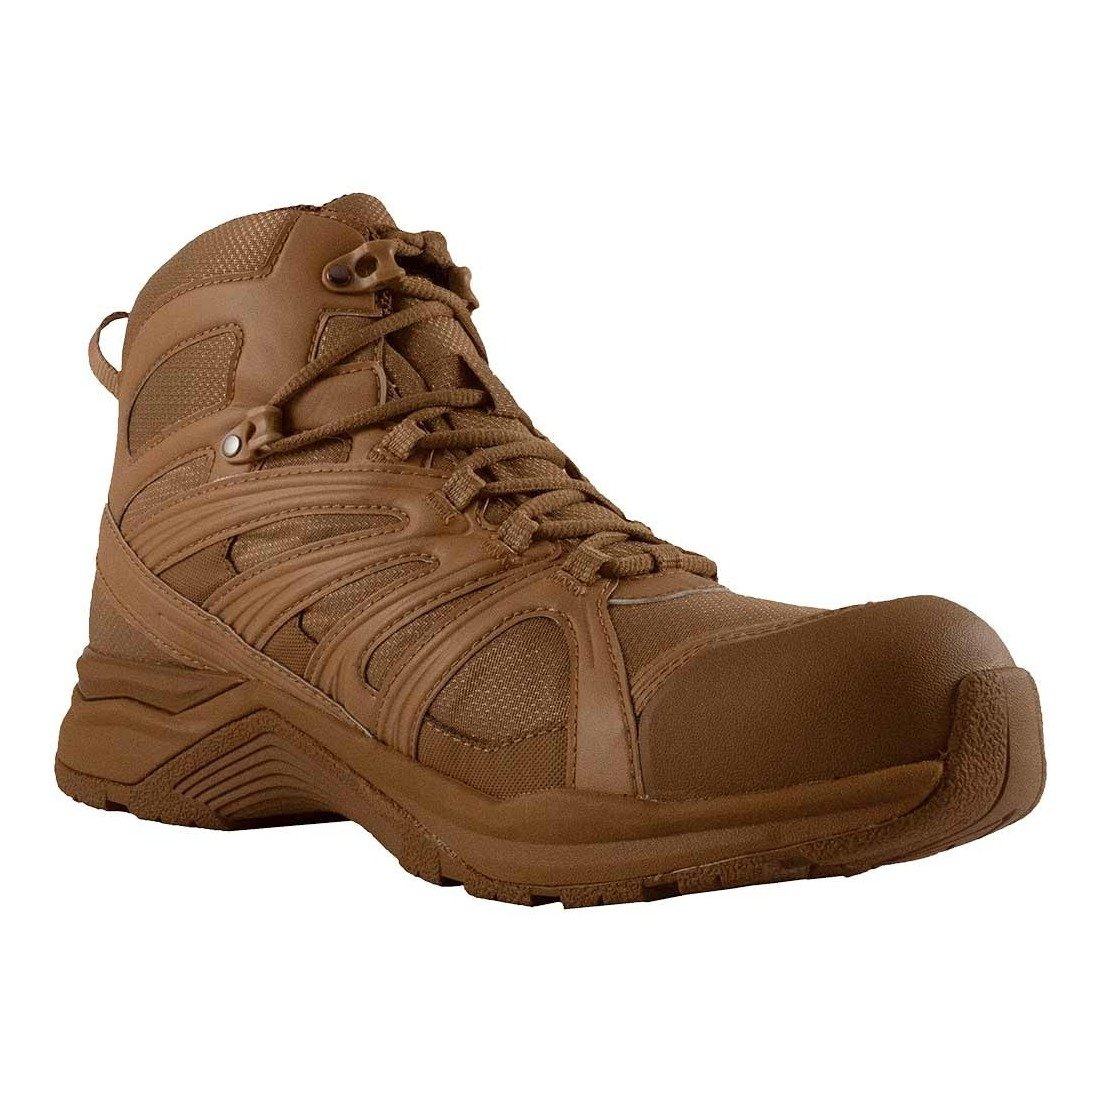 ALTAMA 353203 AStiefeltabad Trail - Mid WP Coyote 40 (7.5)